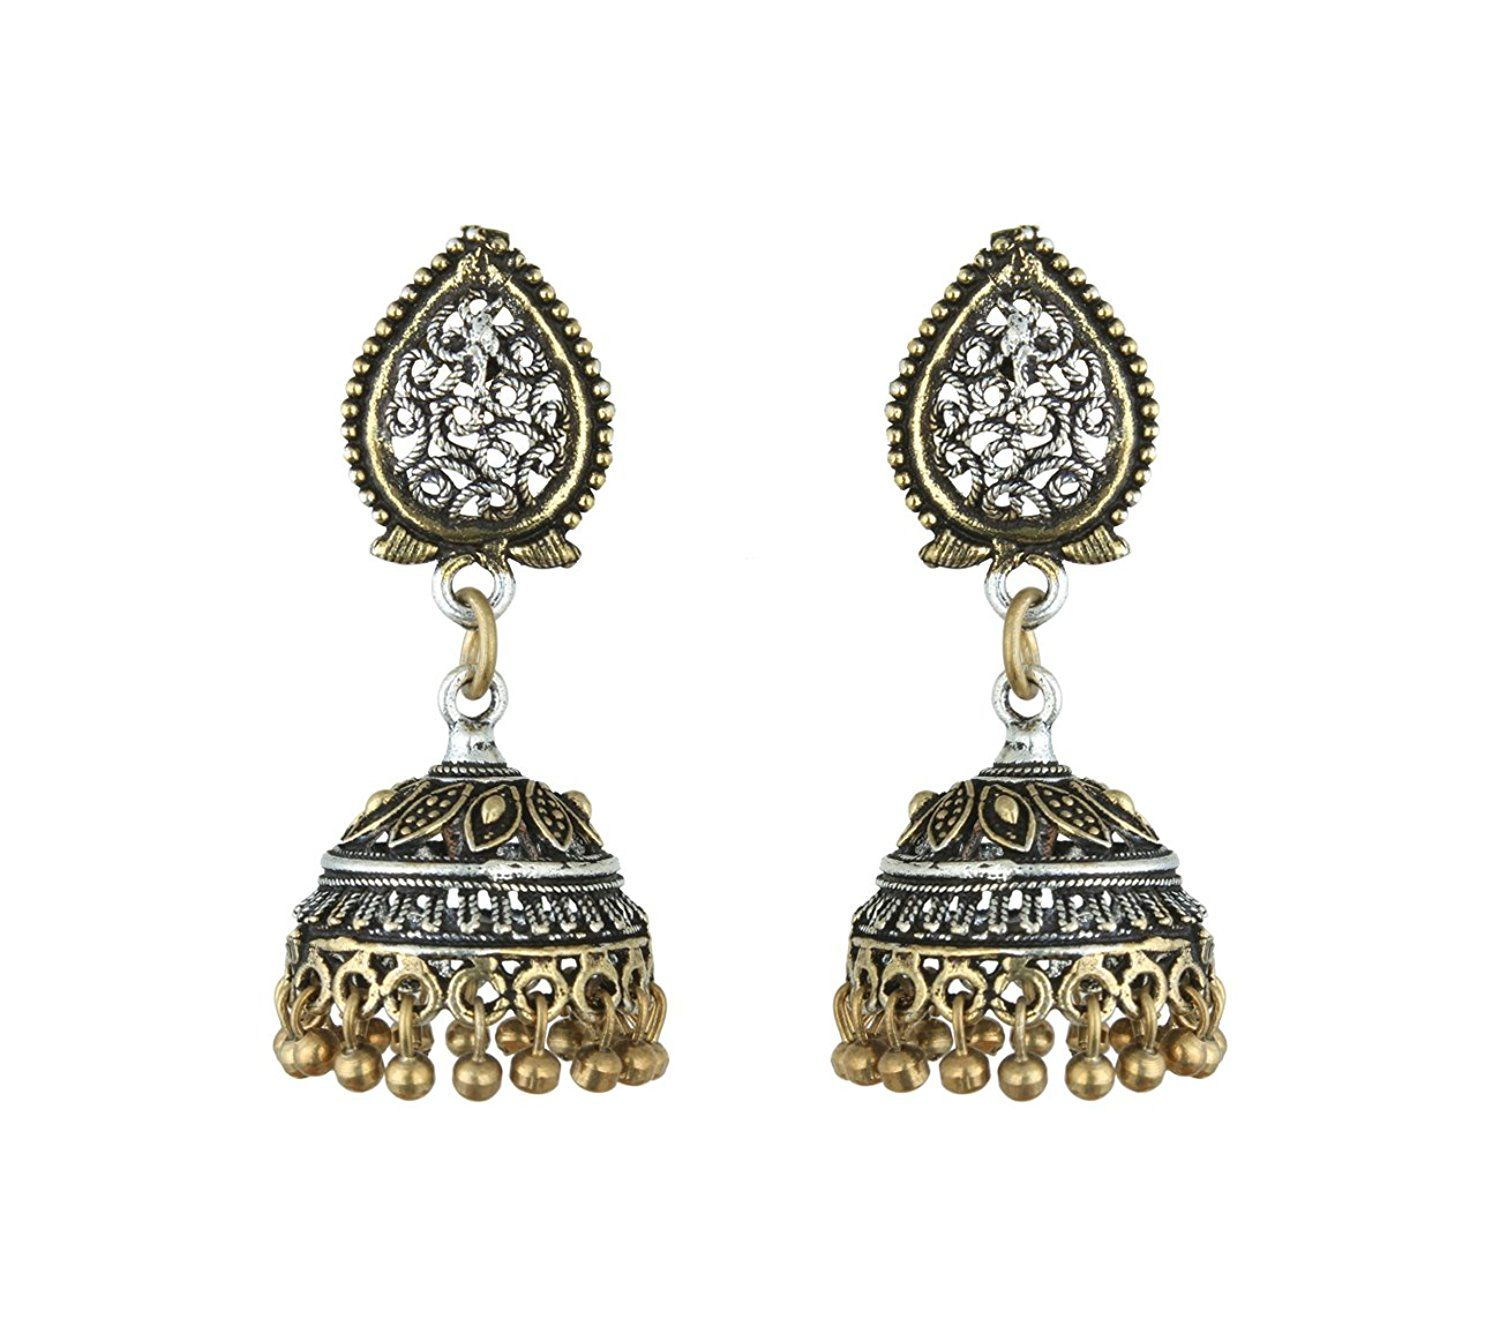 rajasthani hooria earrings